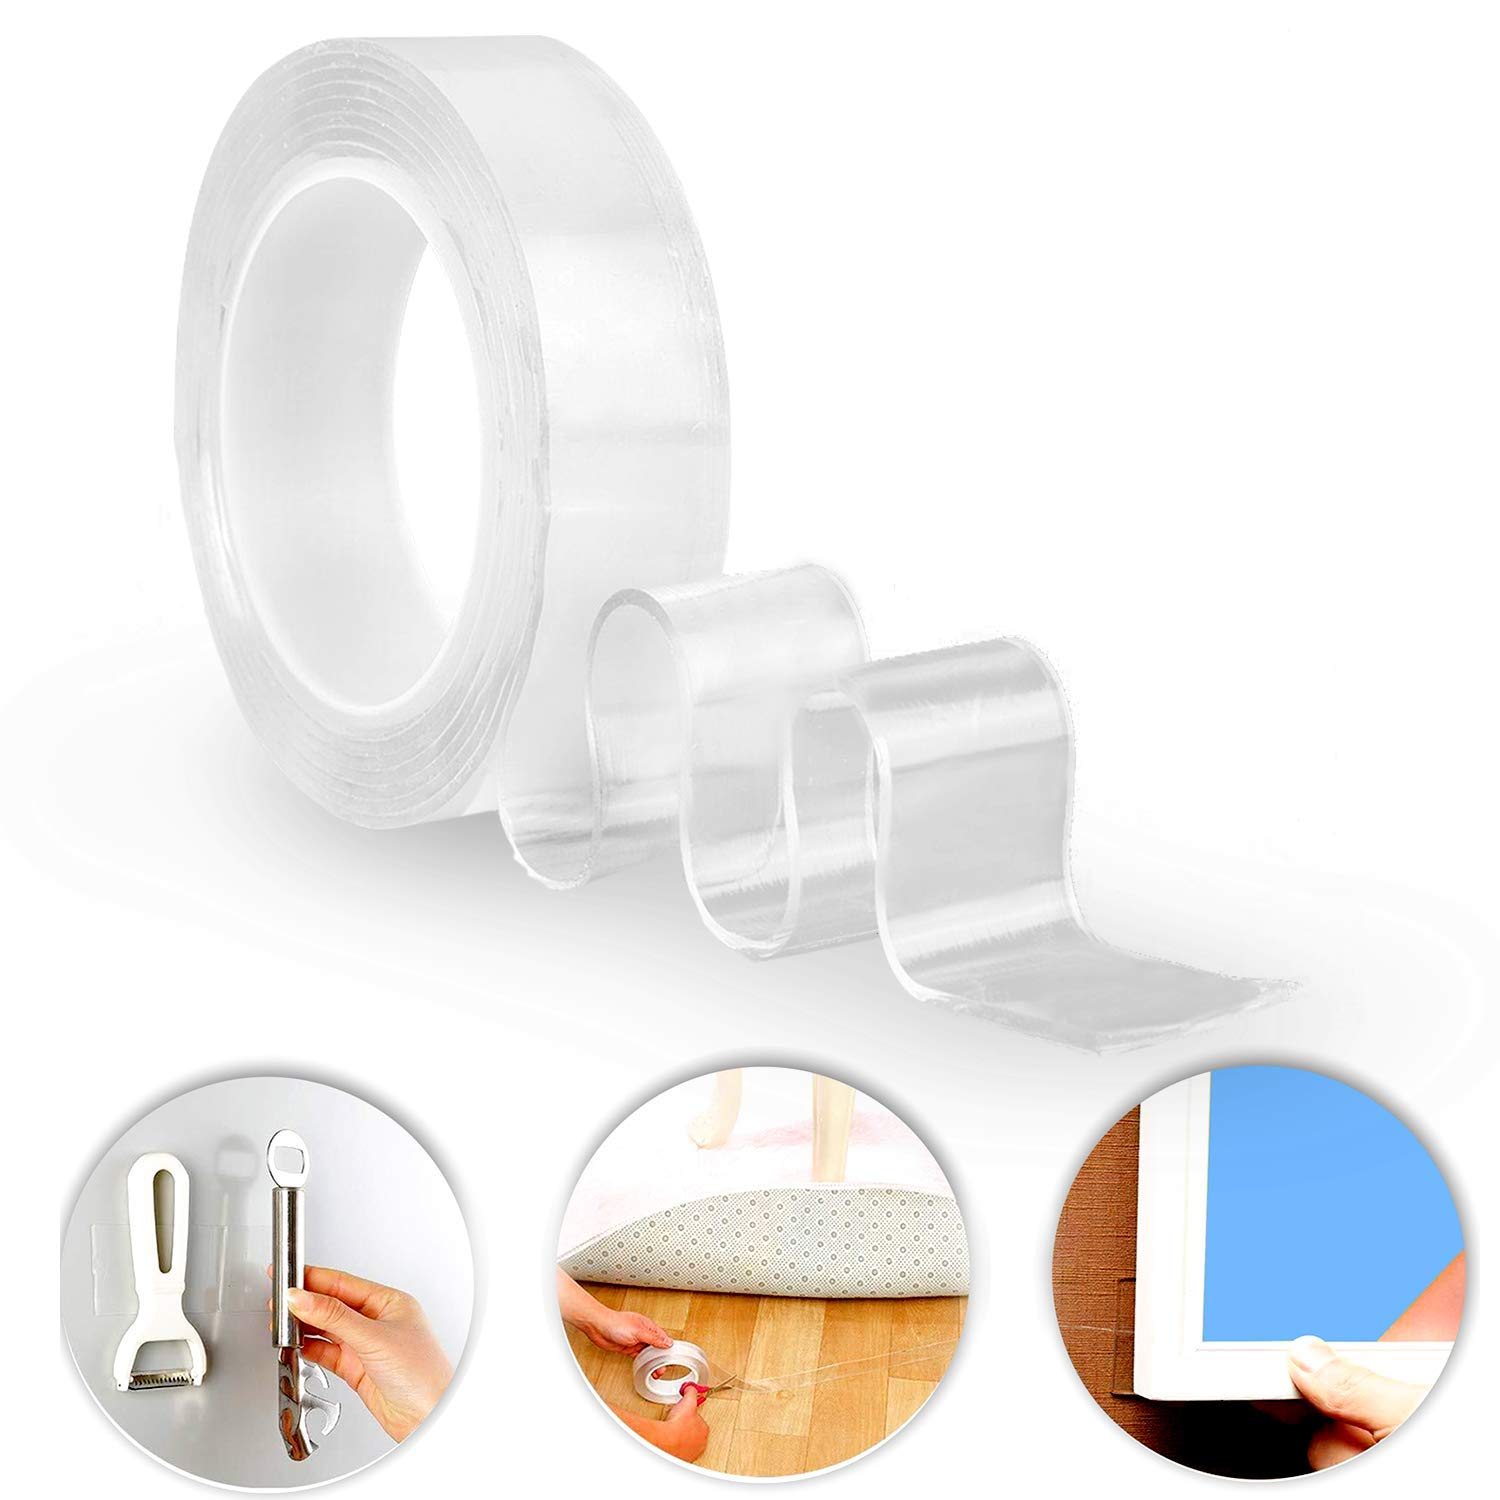 iBayx Traceless Washable Adhesive,Removable Reusable Adhesive Gel Grip Tape Duty Double Sided Tape Clear Silicone Tape for Paste Photos Fix Carpet Mats Pen Key (3.28FT/1METERS)